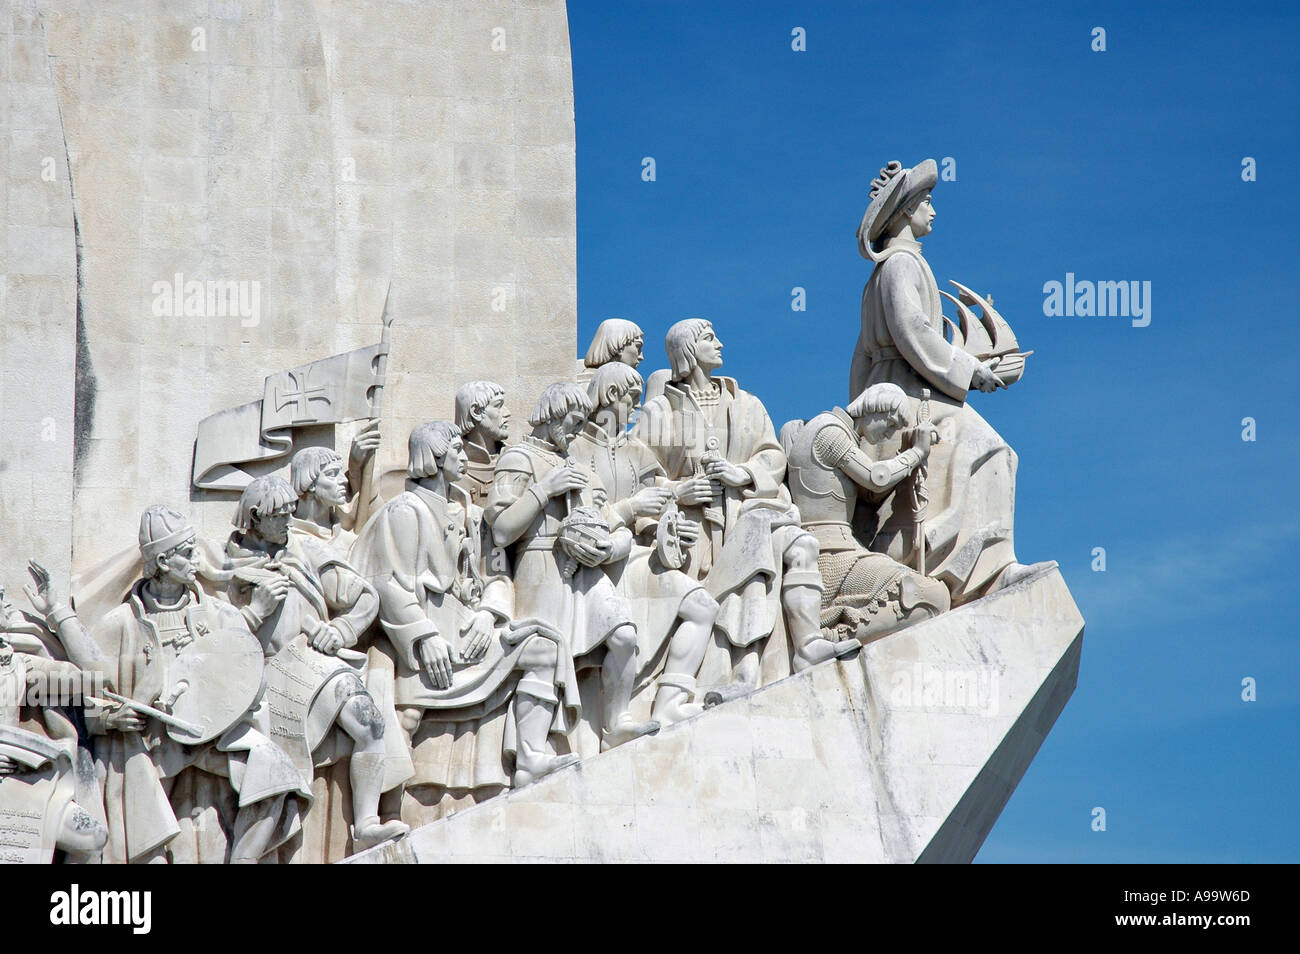 Lisbon Portugal Belem Monument to the Discoveries - Stock Image